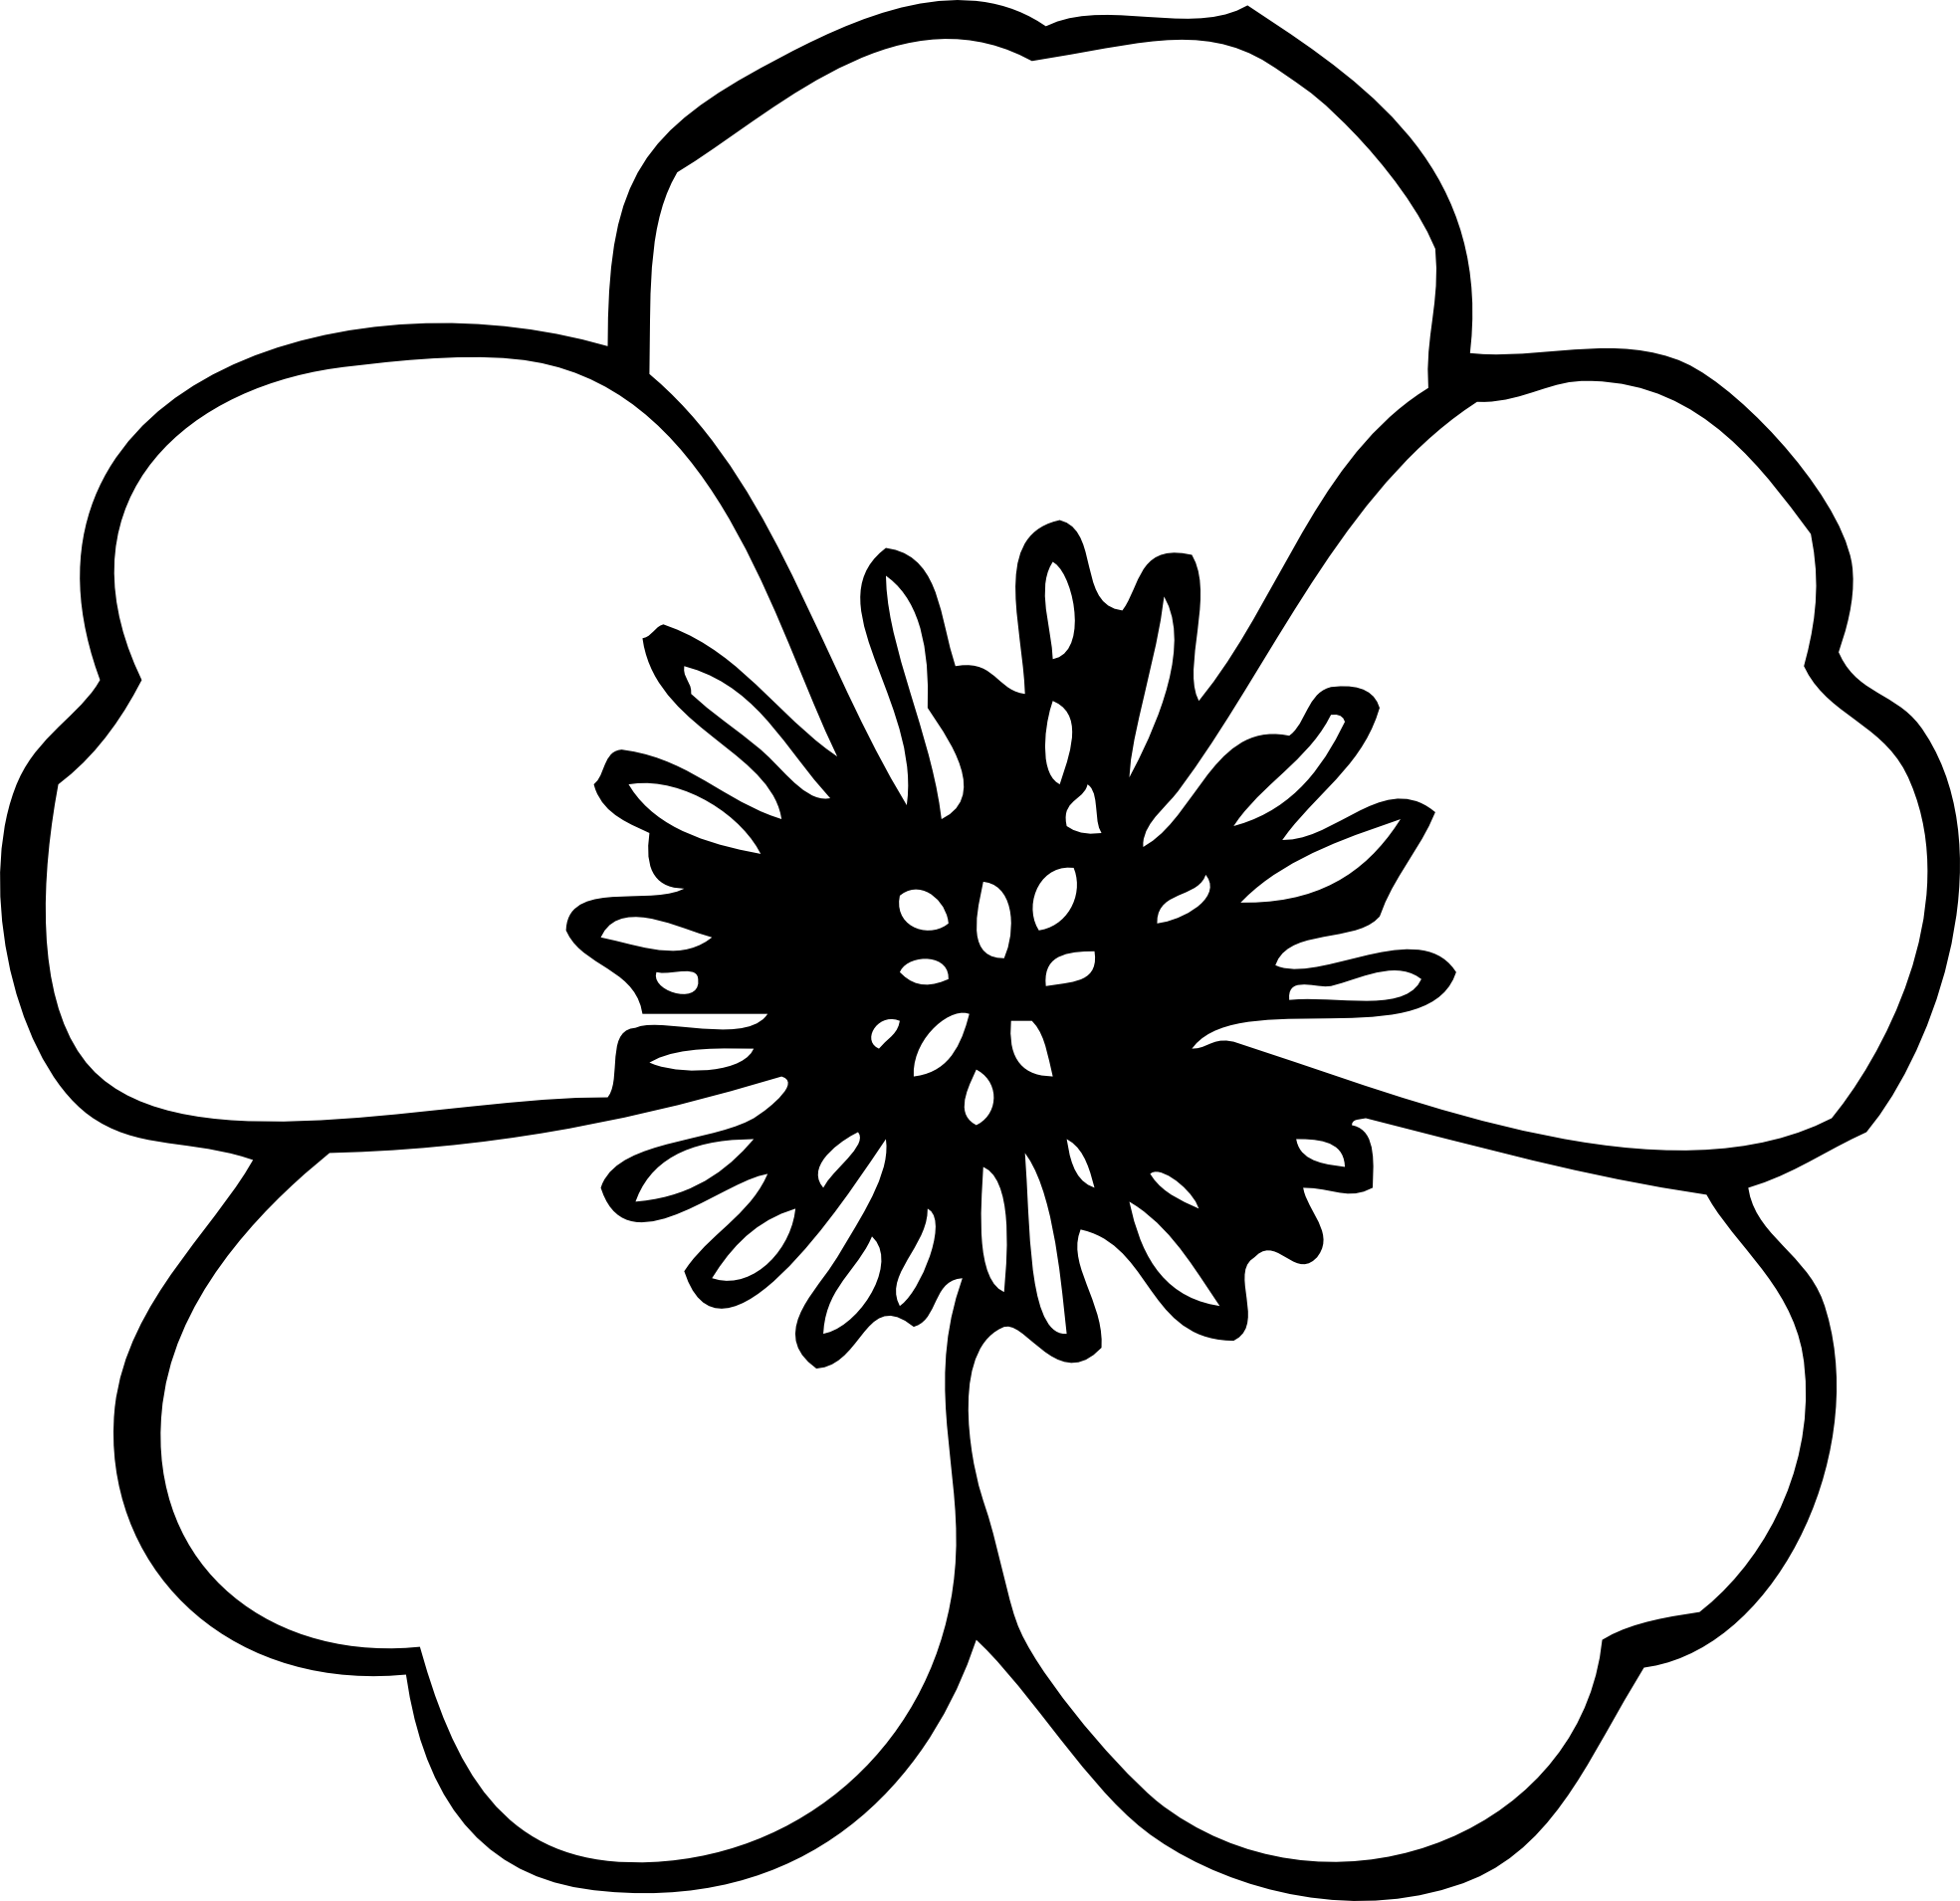 flower black and white clipart panda free clipart images rh clipartpanda com flower black and white clip art free flower black and white clip art images